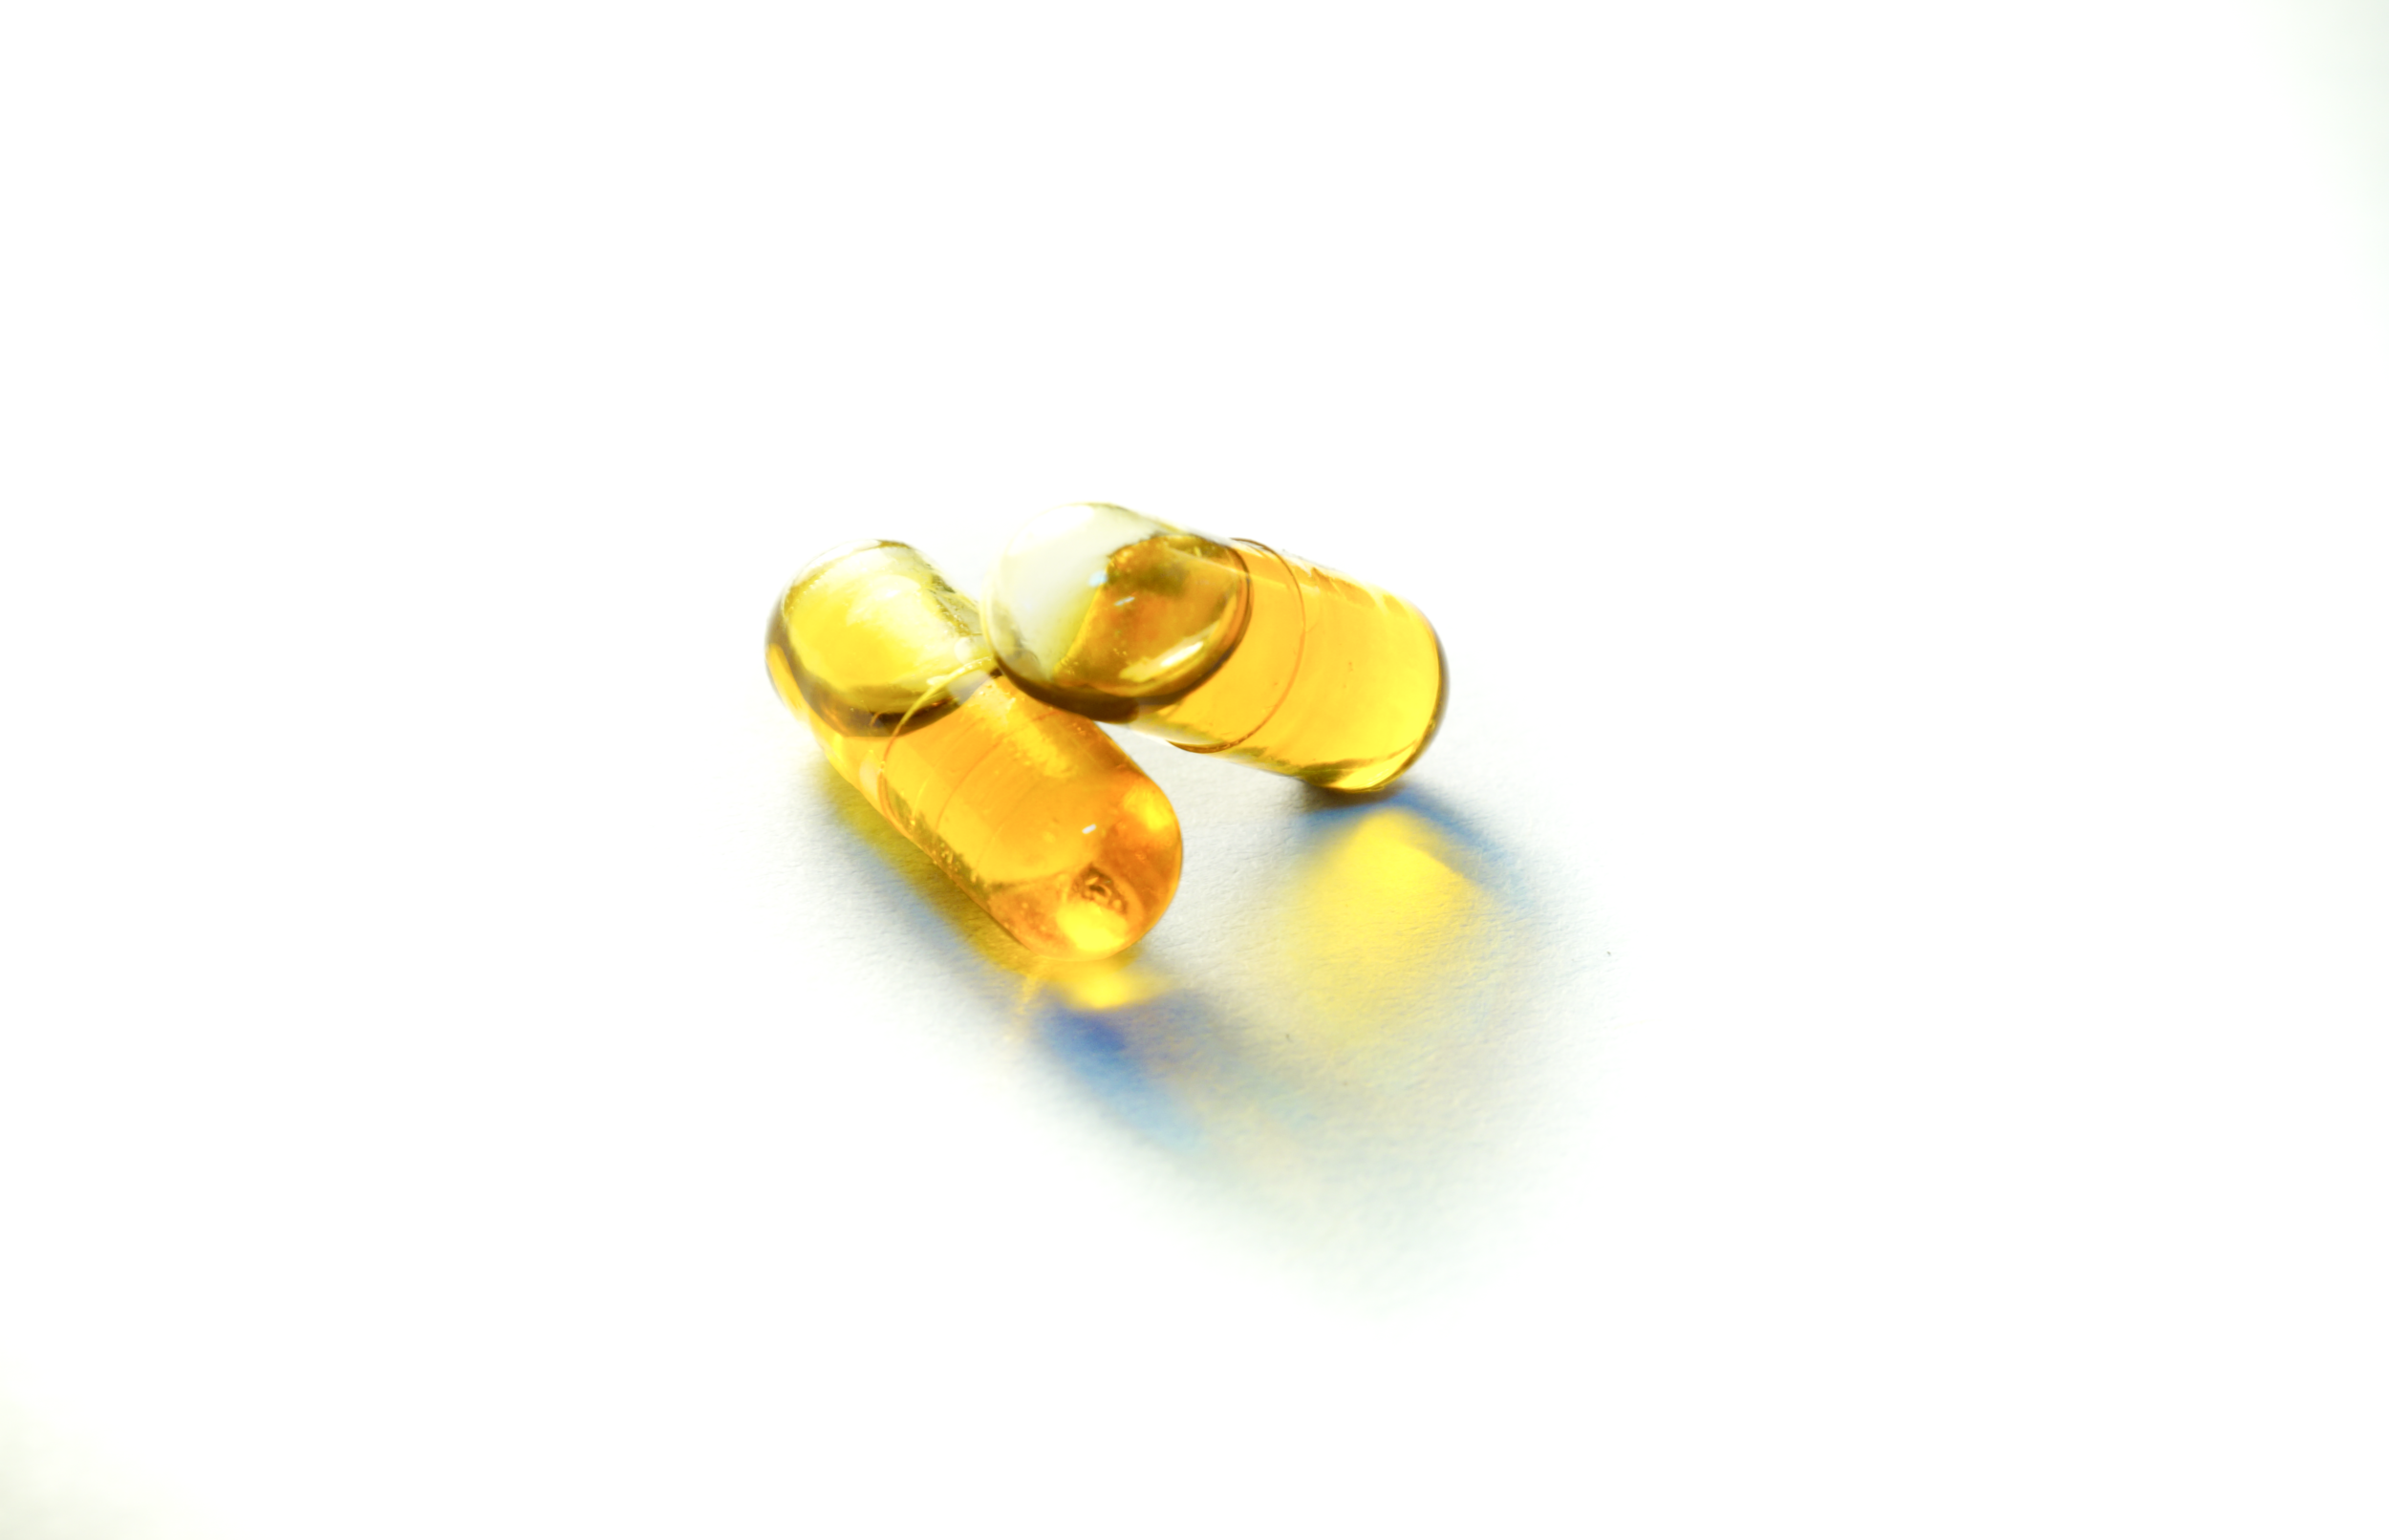 Micro Dose   Certain CPC products allow you to take micro doses of CBD and THC. For some CPC patients this allowed them to break 10mg dose into four spread out 2.5mg doses. For others that are sensitive to THC, or only need small amounts of cannabinoids, microdoses allow them to create custom dosing structures.